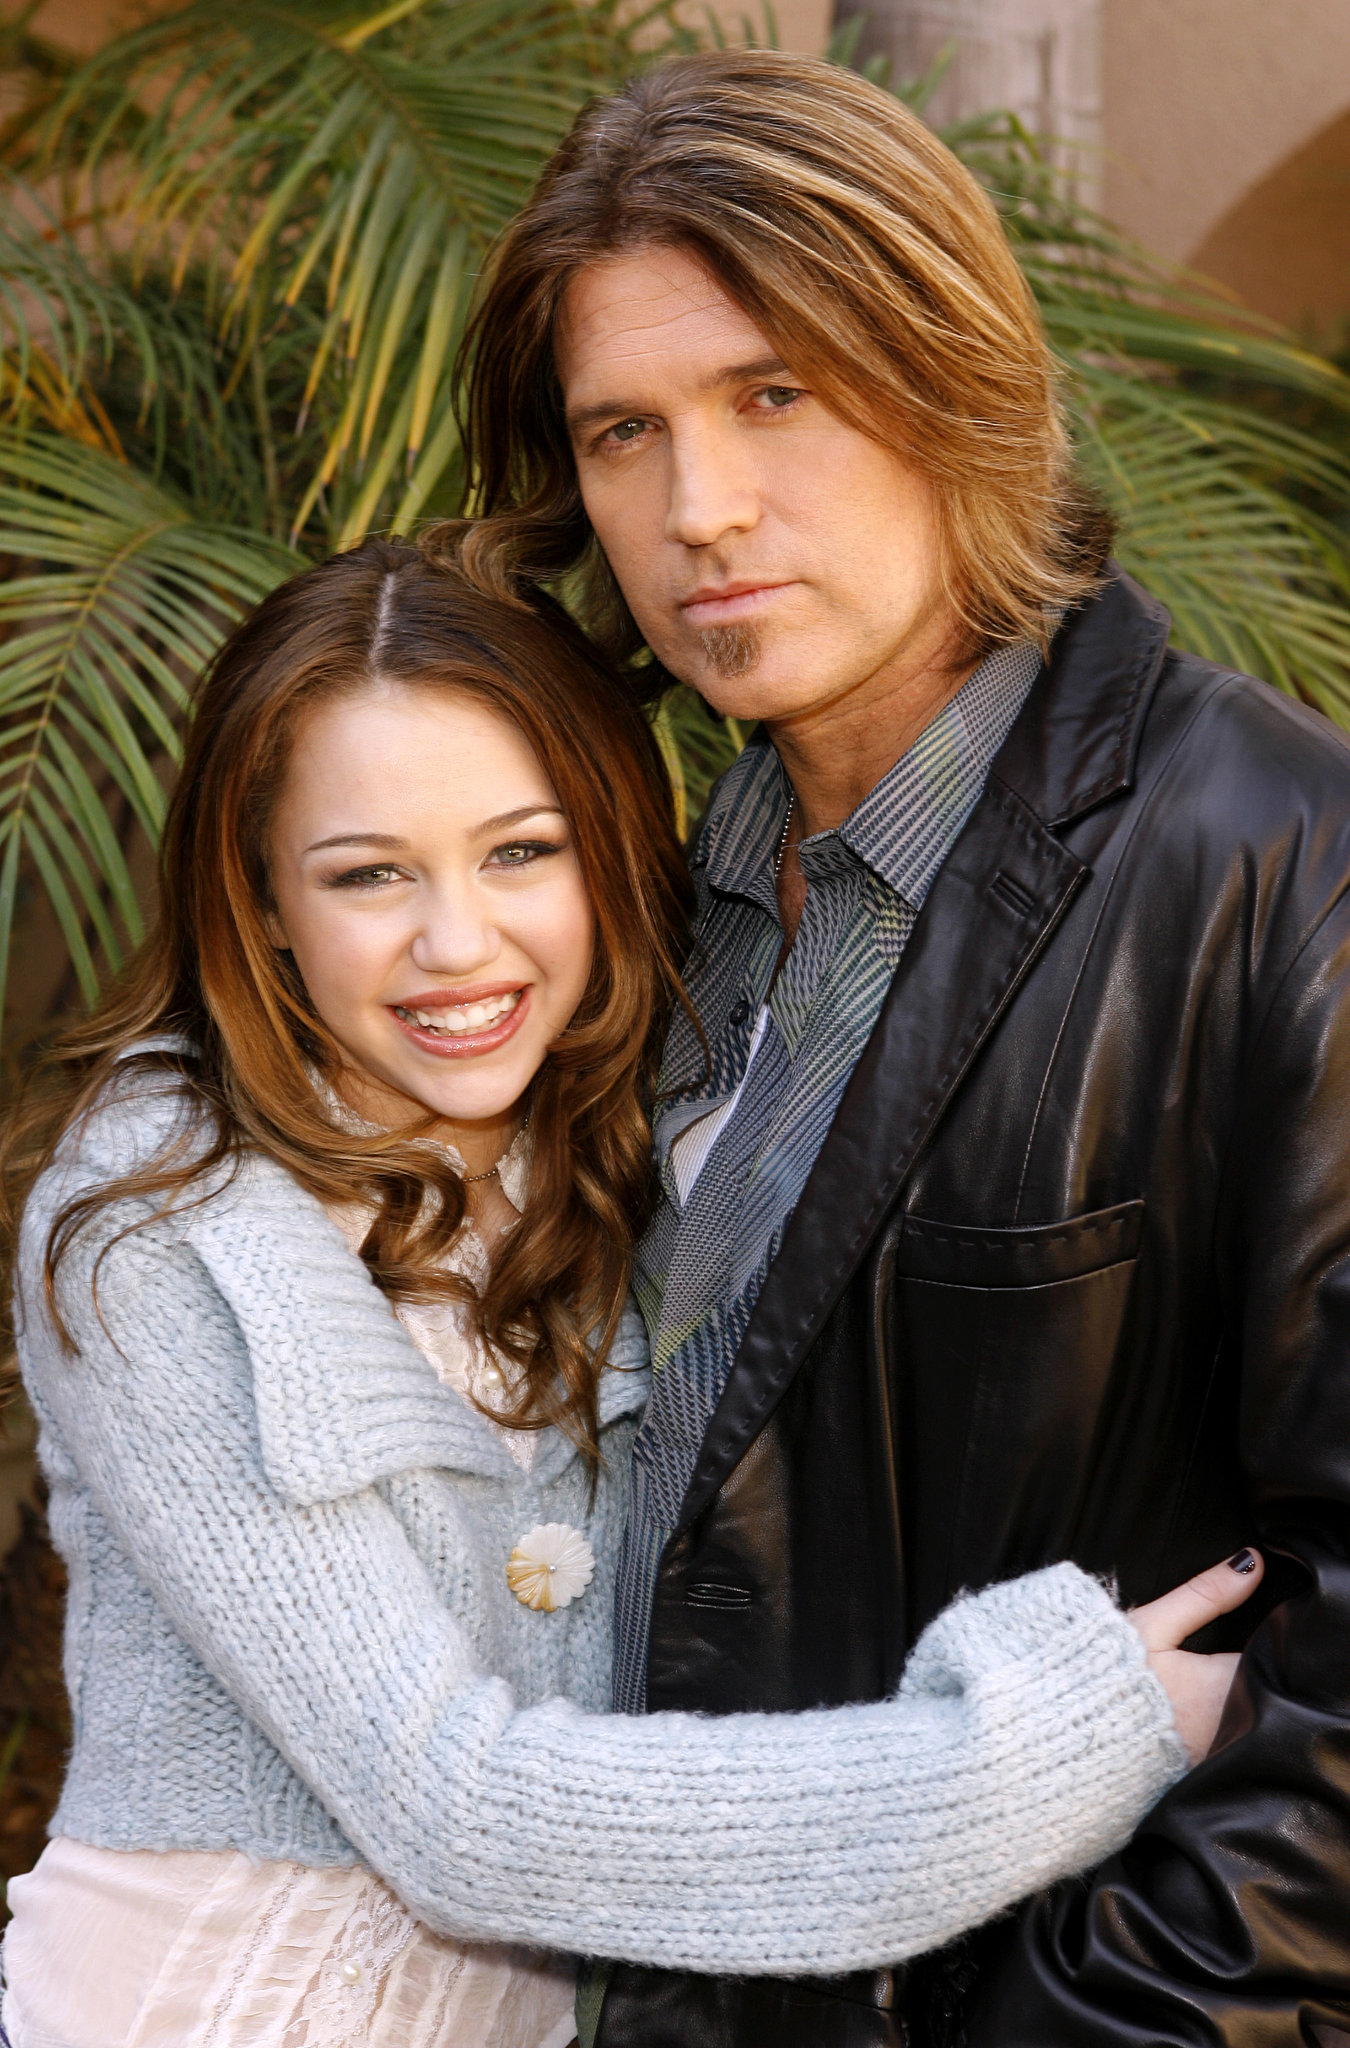 Billy ray cyrus hannah montana